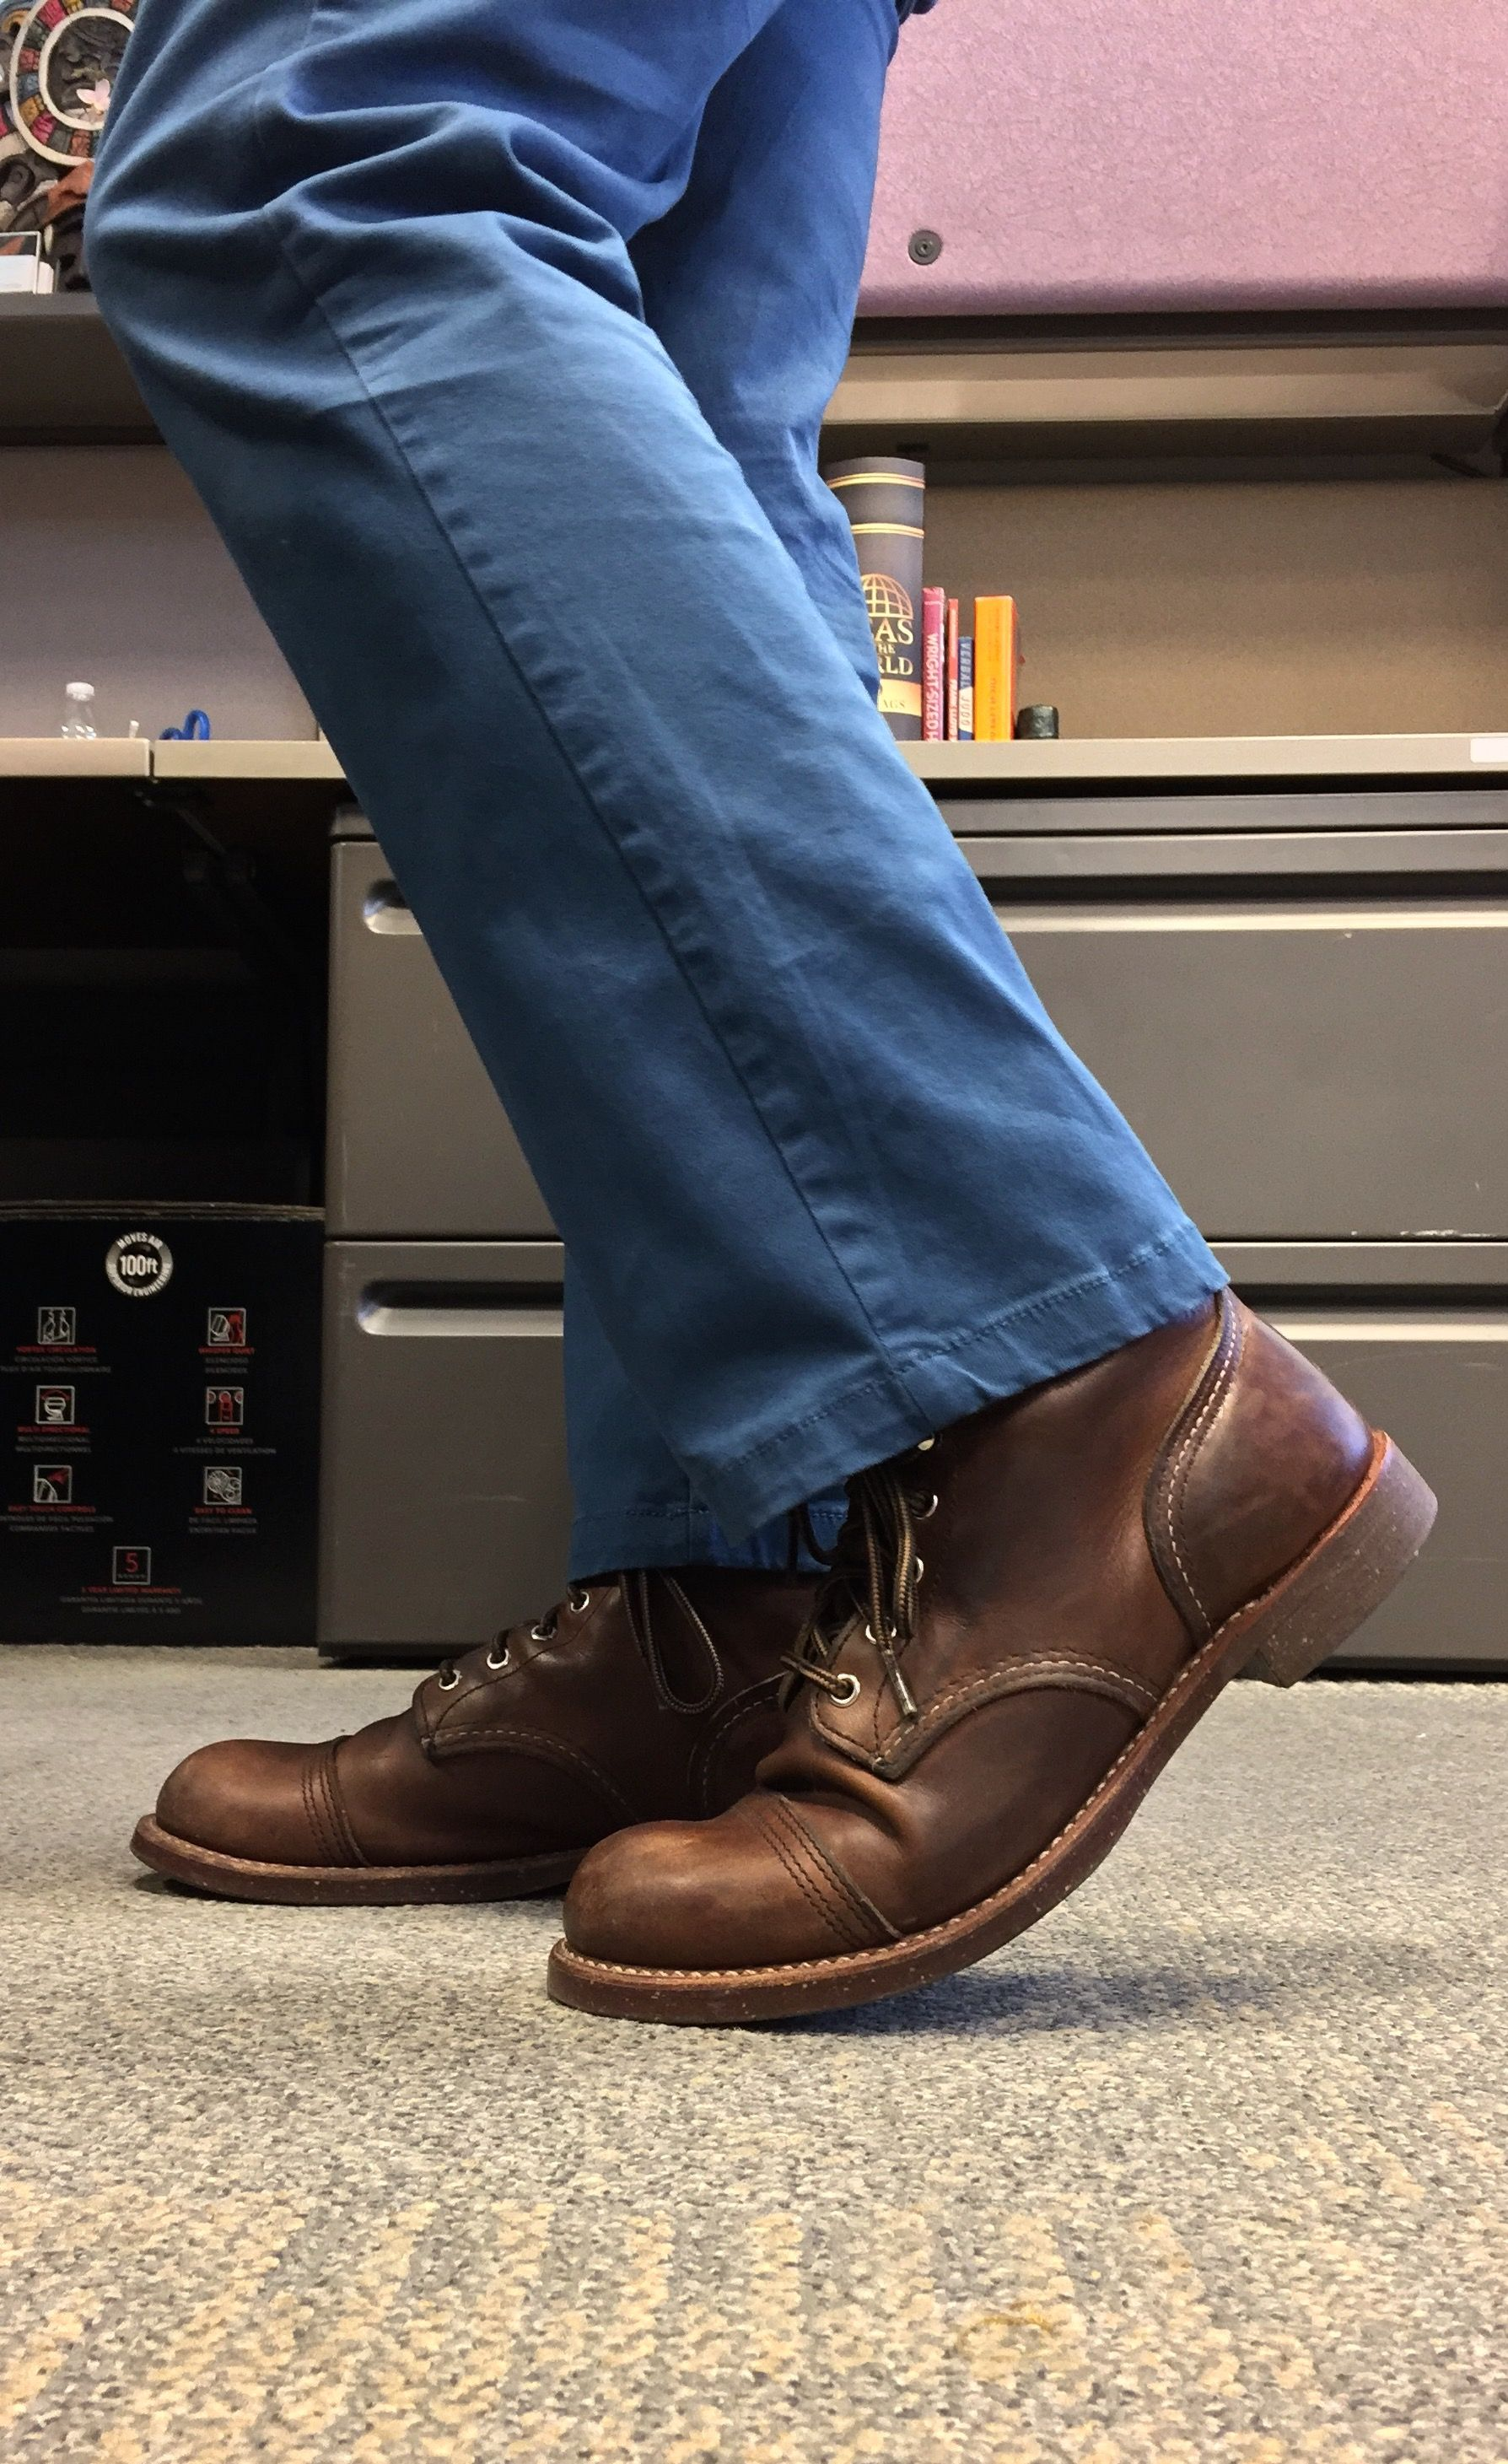 89182cb388d Red Wing Iron Ranger 8111Boots | Red Wing Iron Ranger Fan Club in ...